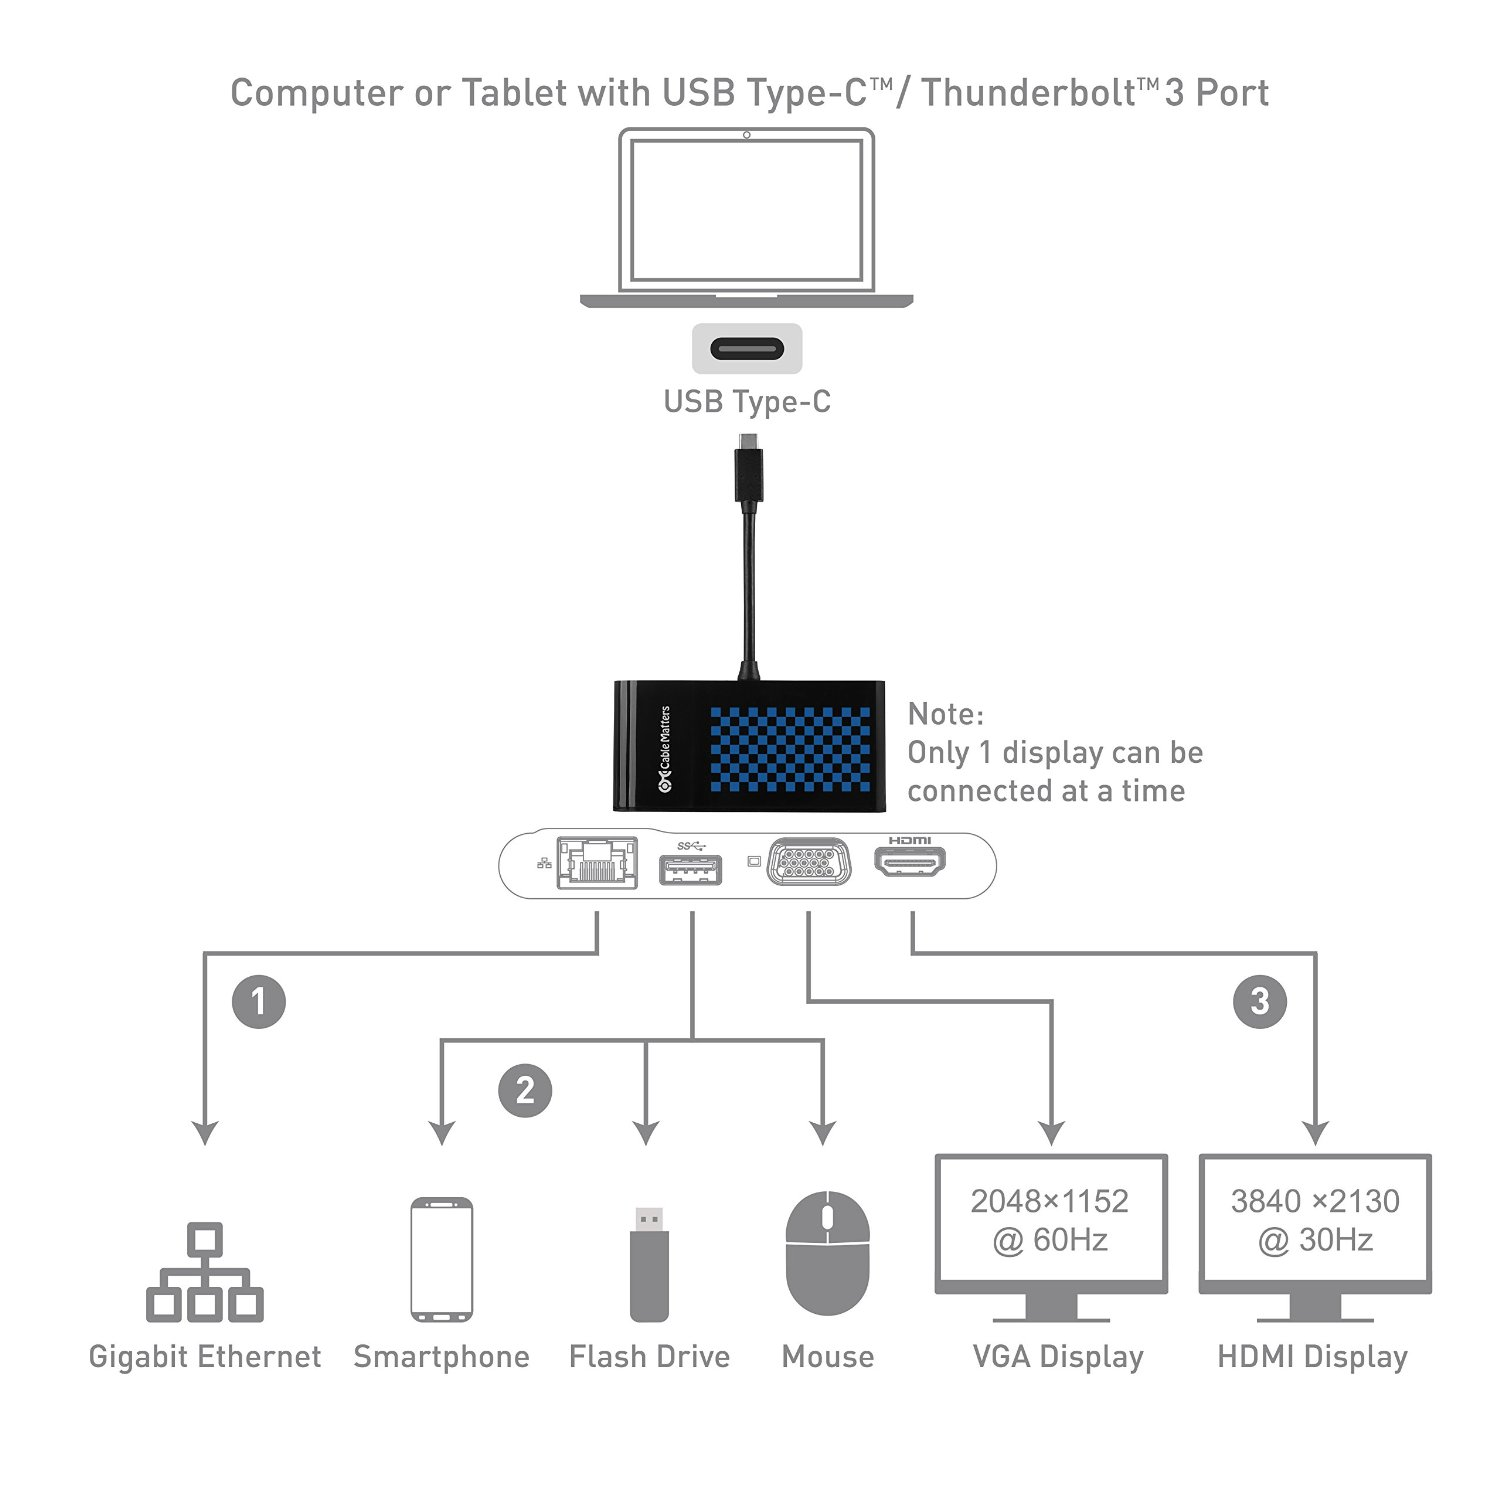 A Brief Look At Usb Type C Cable Matters Knowledge Base Printer Wiring Diagram Hdmi Equipped Monitor Or Hub For Standard Devices Like Hard Drives And Printers Currently Has Several Connectivity Solutions